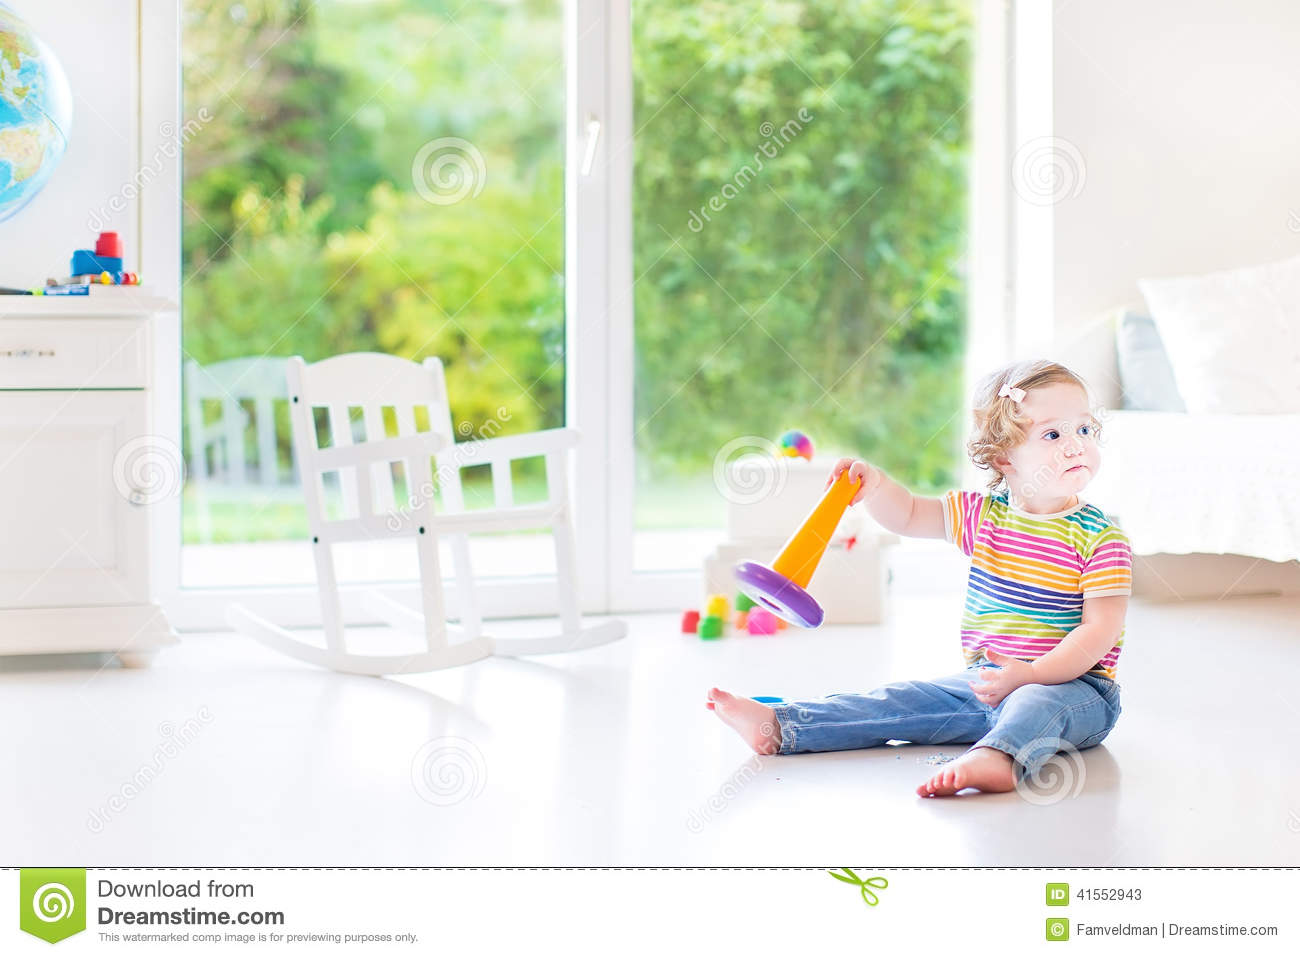 Funny toddler girl with pyramid toy in white room